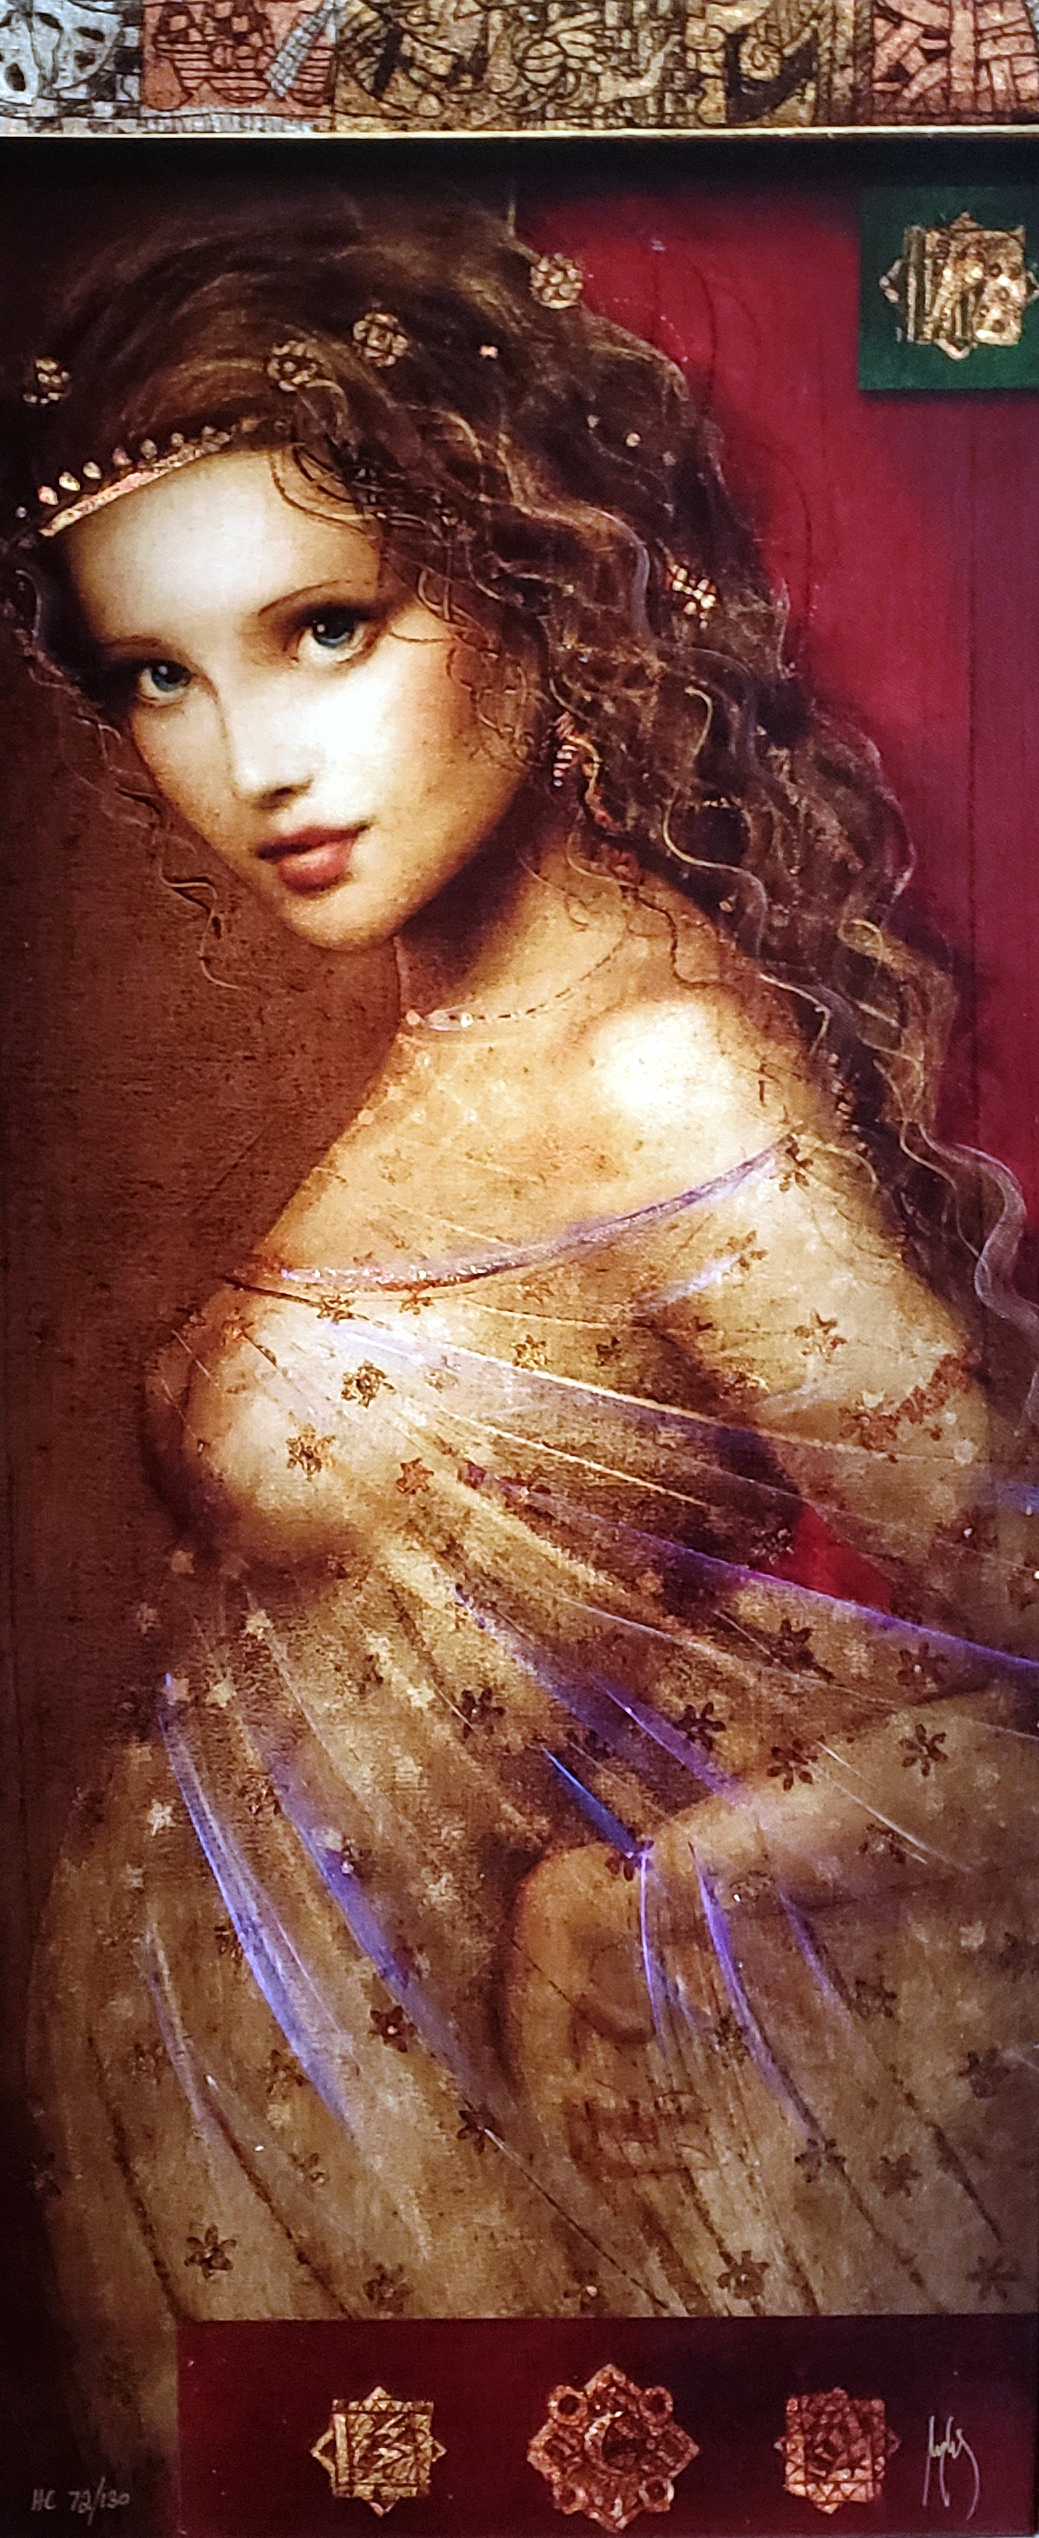 La Liciana artwork by Csaba Markus - art listed for sale on Artplode